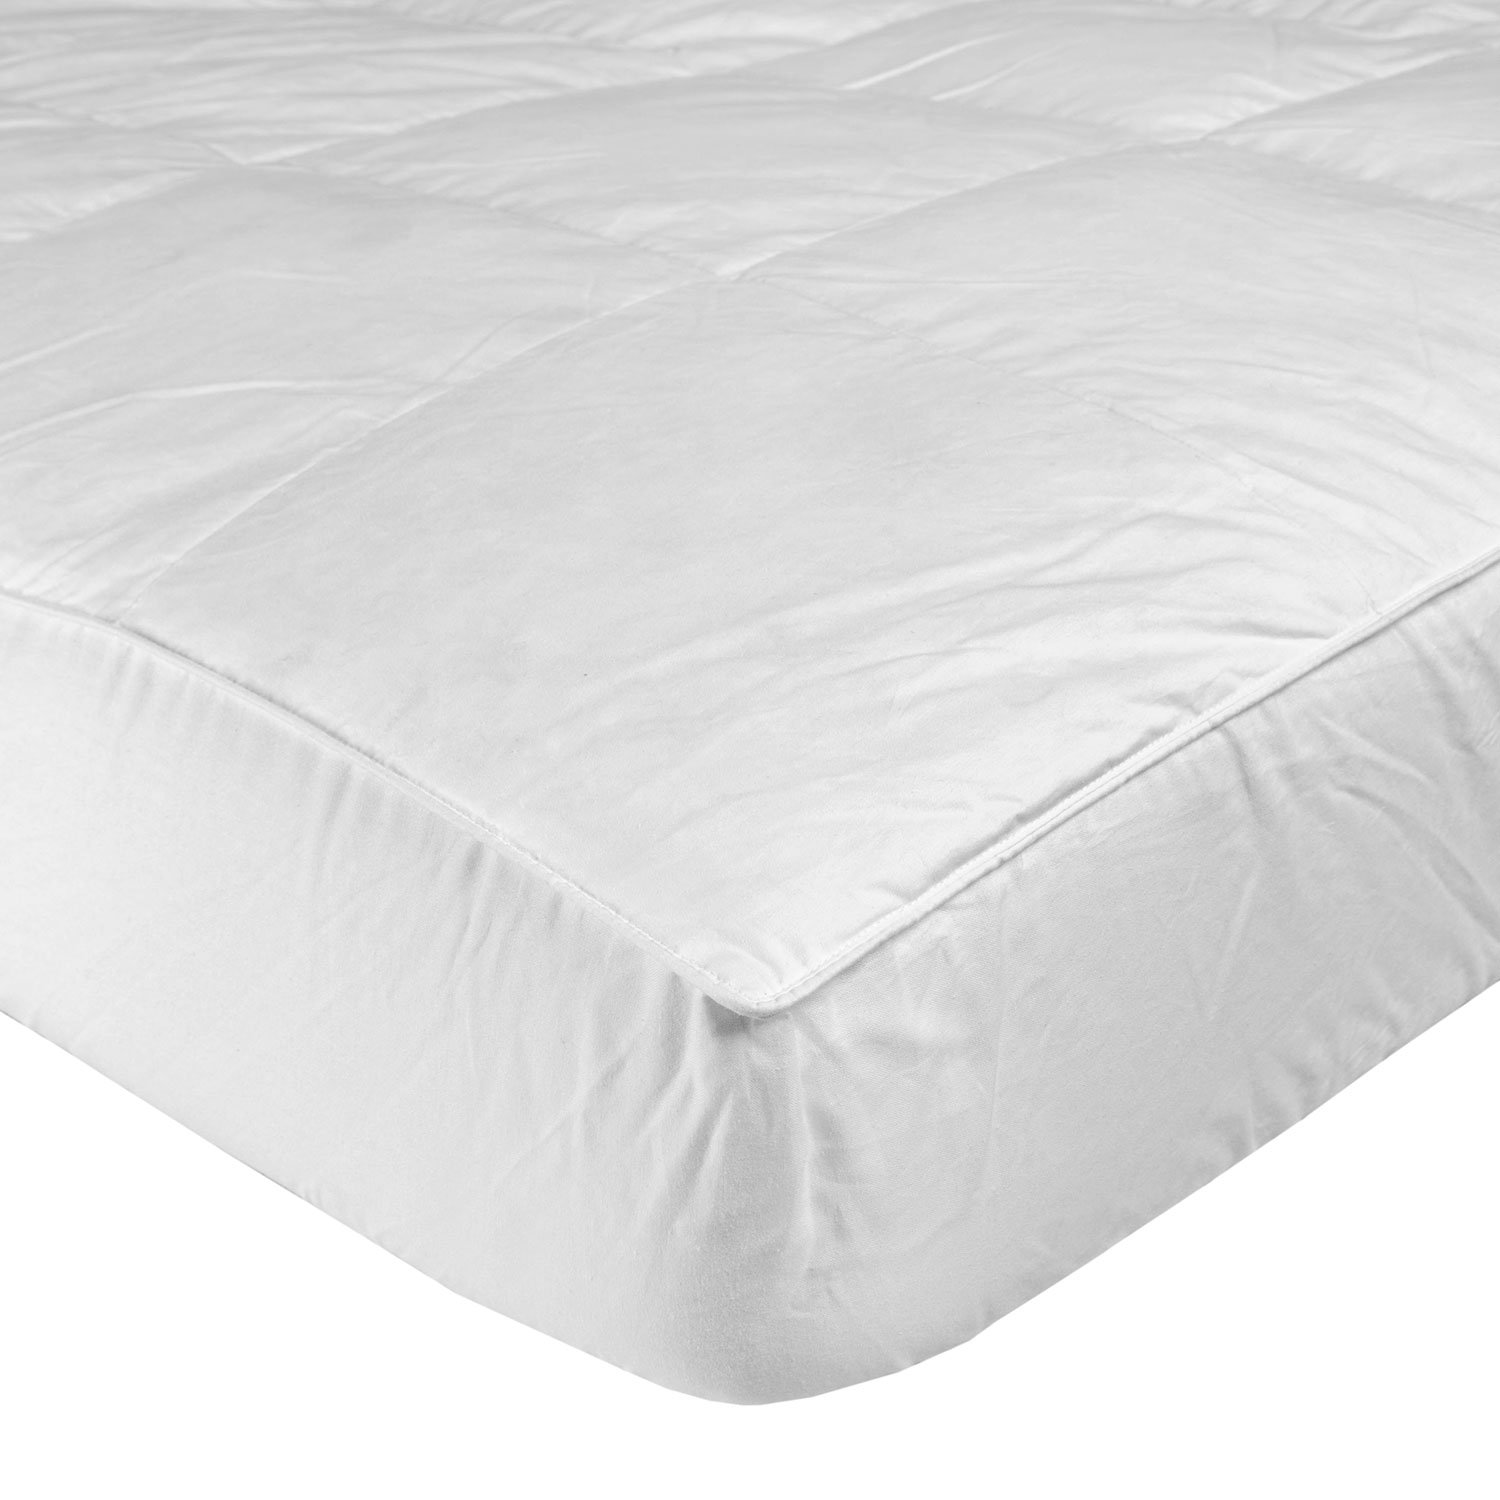 Homescapes Small Single 'Pure Indulgence' Mattress Topper, Hypoallergenic 100% Cotton Cover with 1200GSM Pearl Polyester Filling and Elasticated Straps, 79 x 190 cm (31